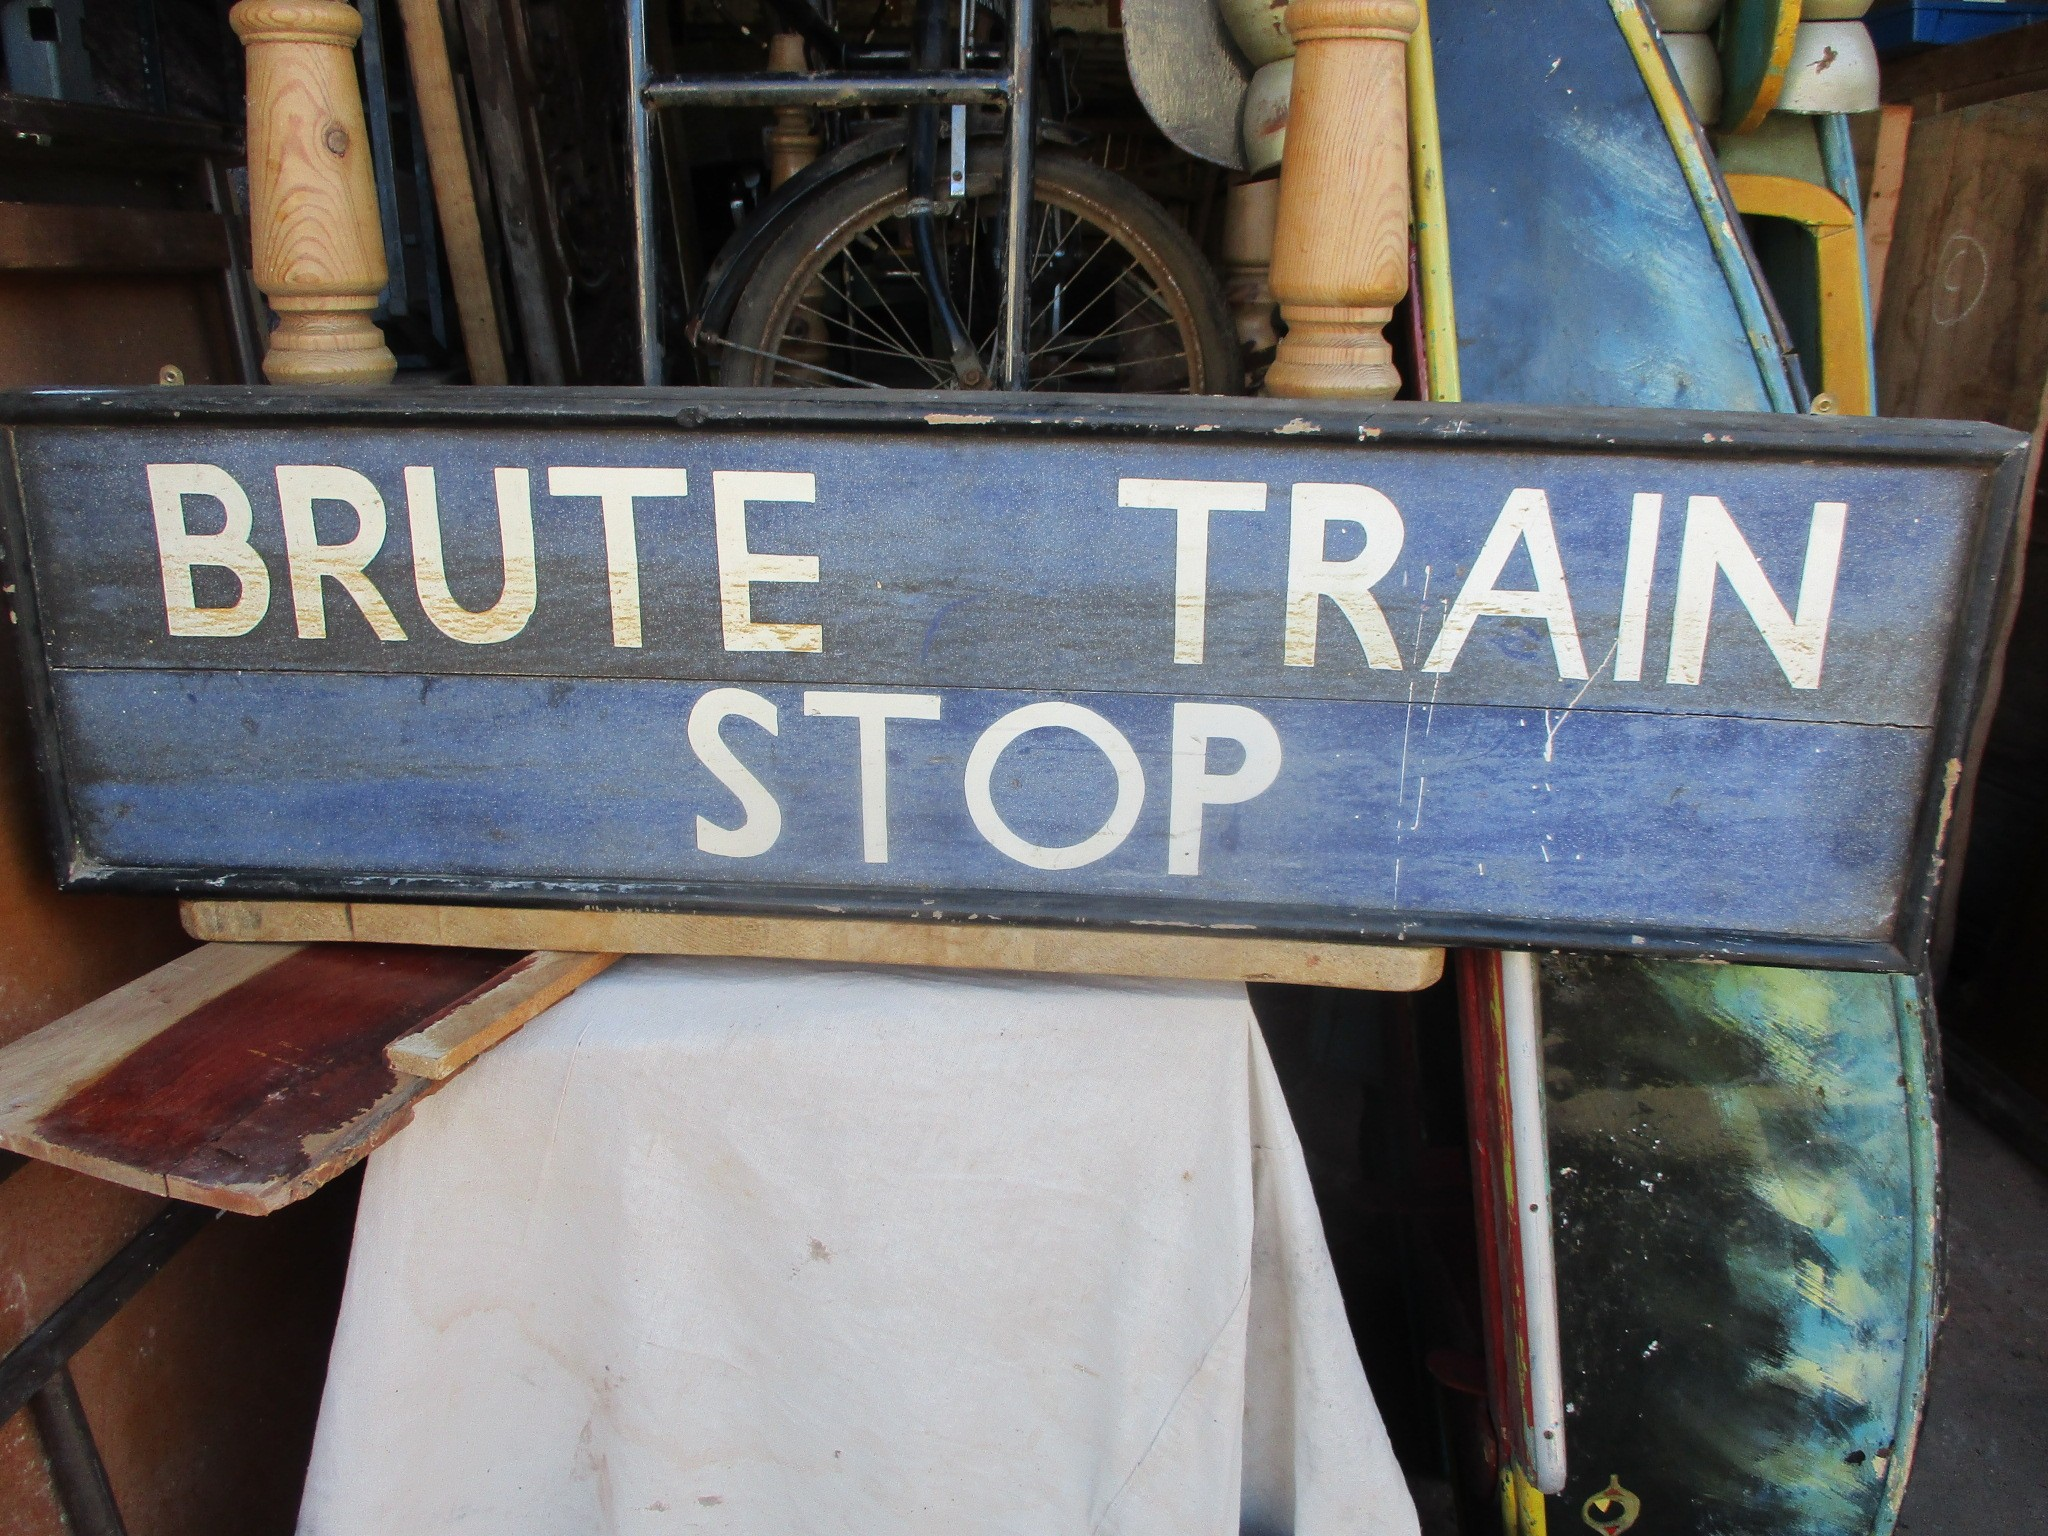 Brute Train Stop , hand painted on wood signage